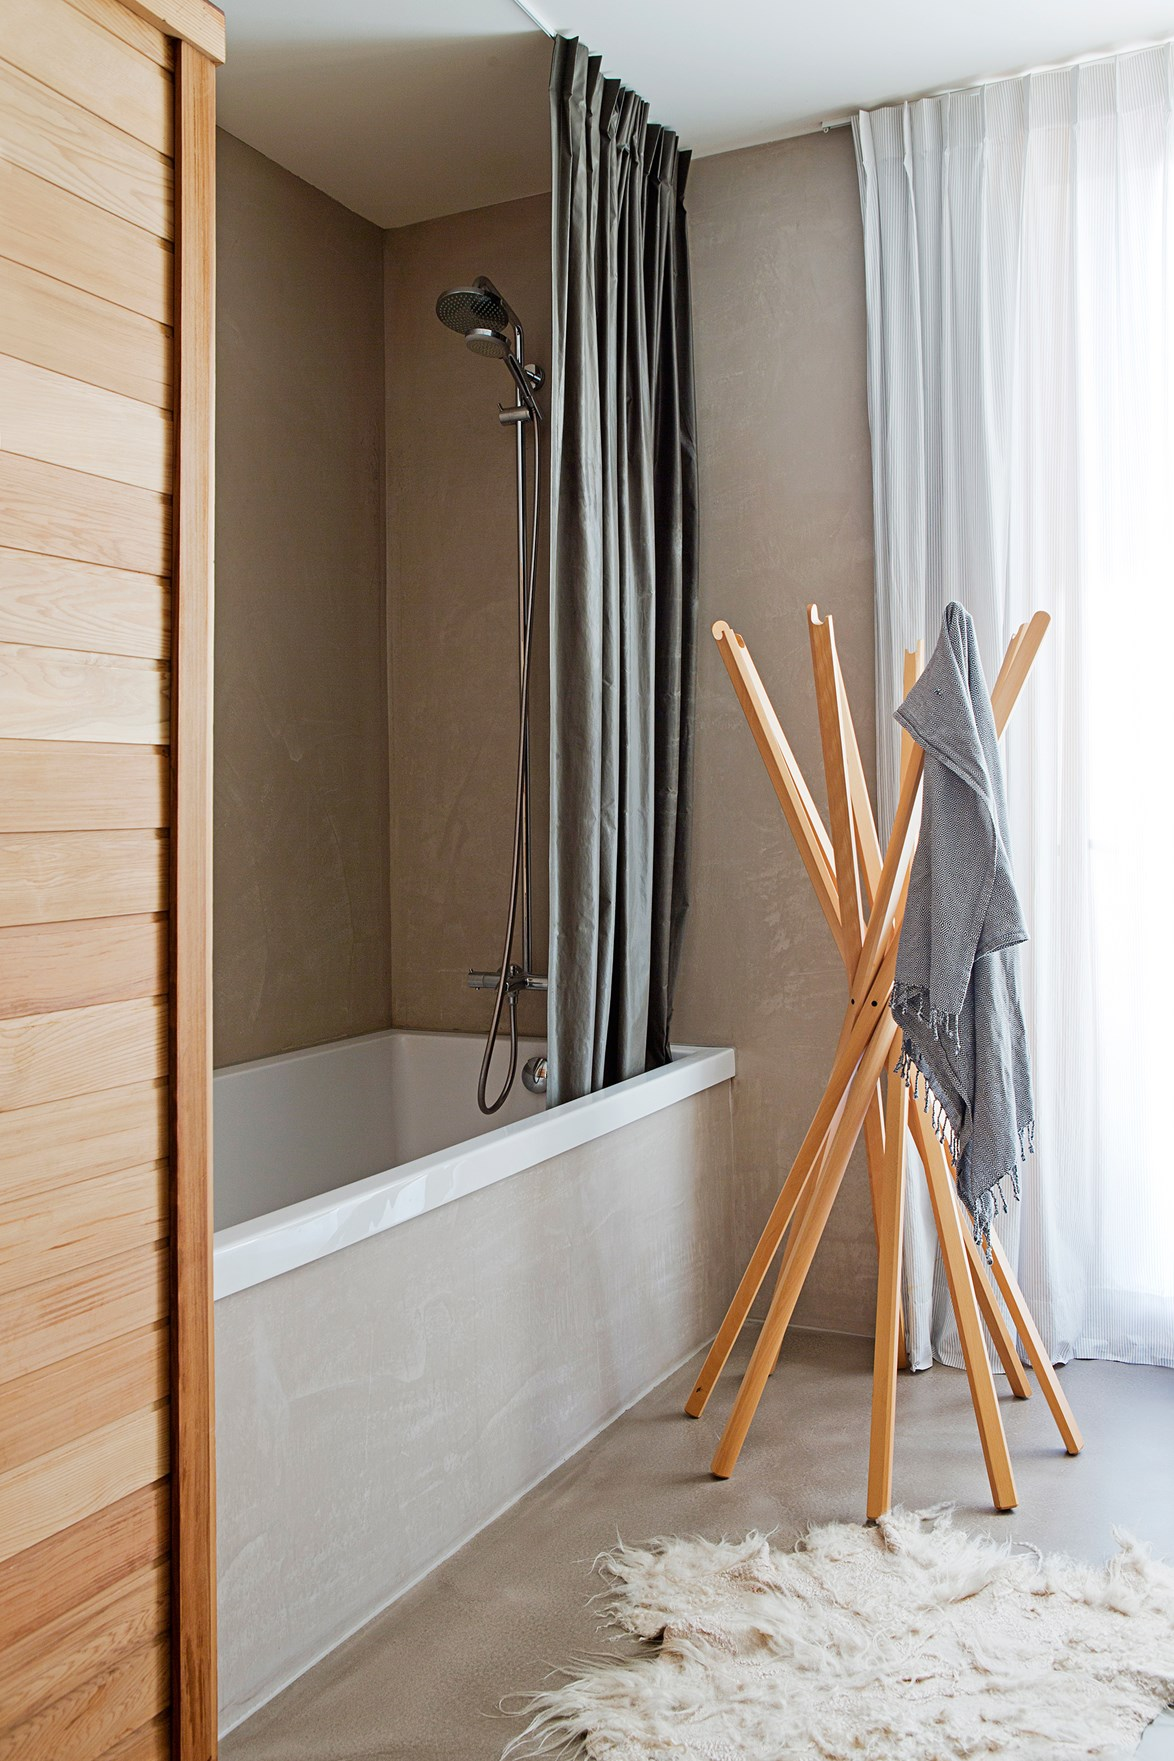 """Natural textures abound in this bathroom in a [Scandi-style dutch bungalow](https://www.homestolove.com.au/gallery-christiens-simply-beautiful-dutch-bungalow-2172